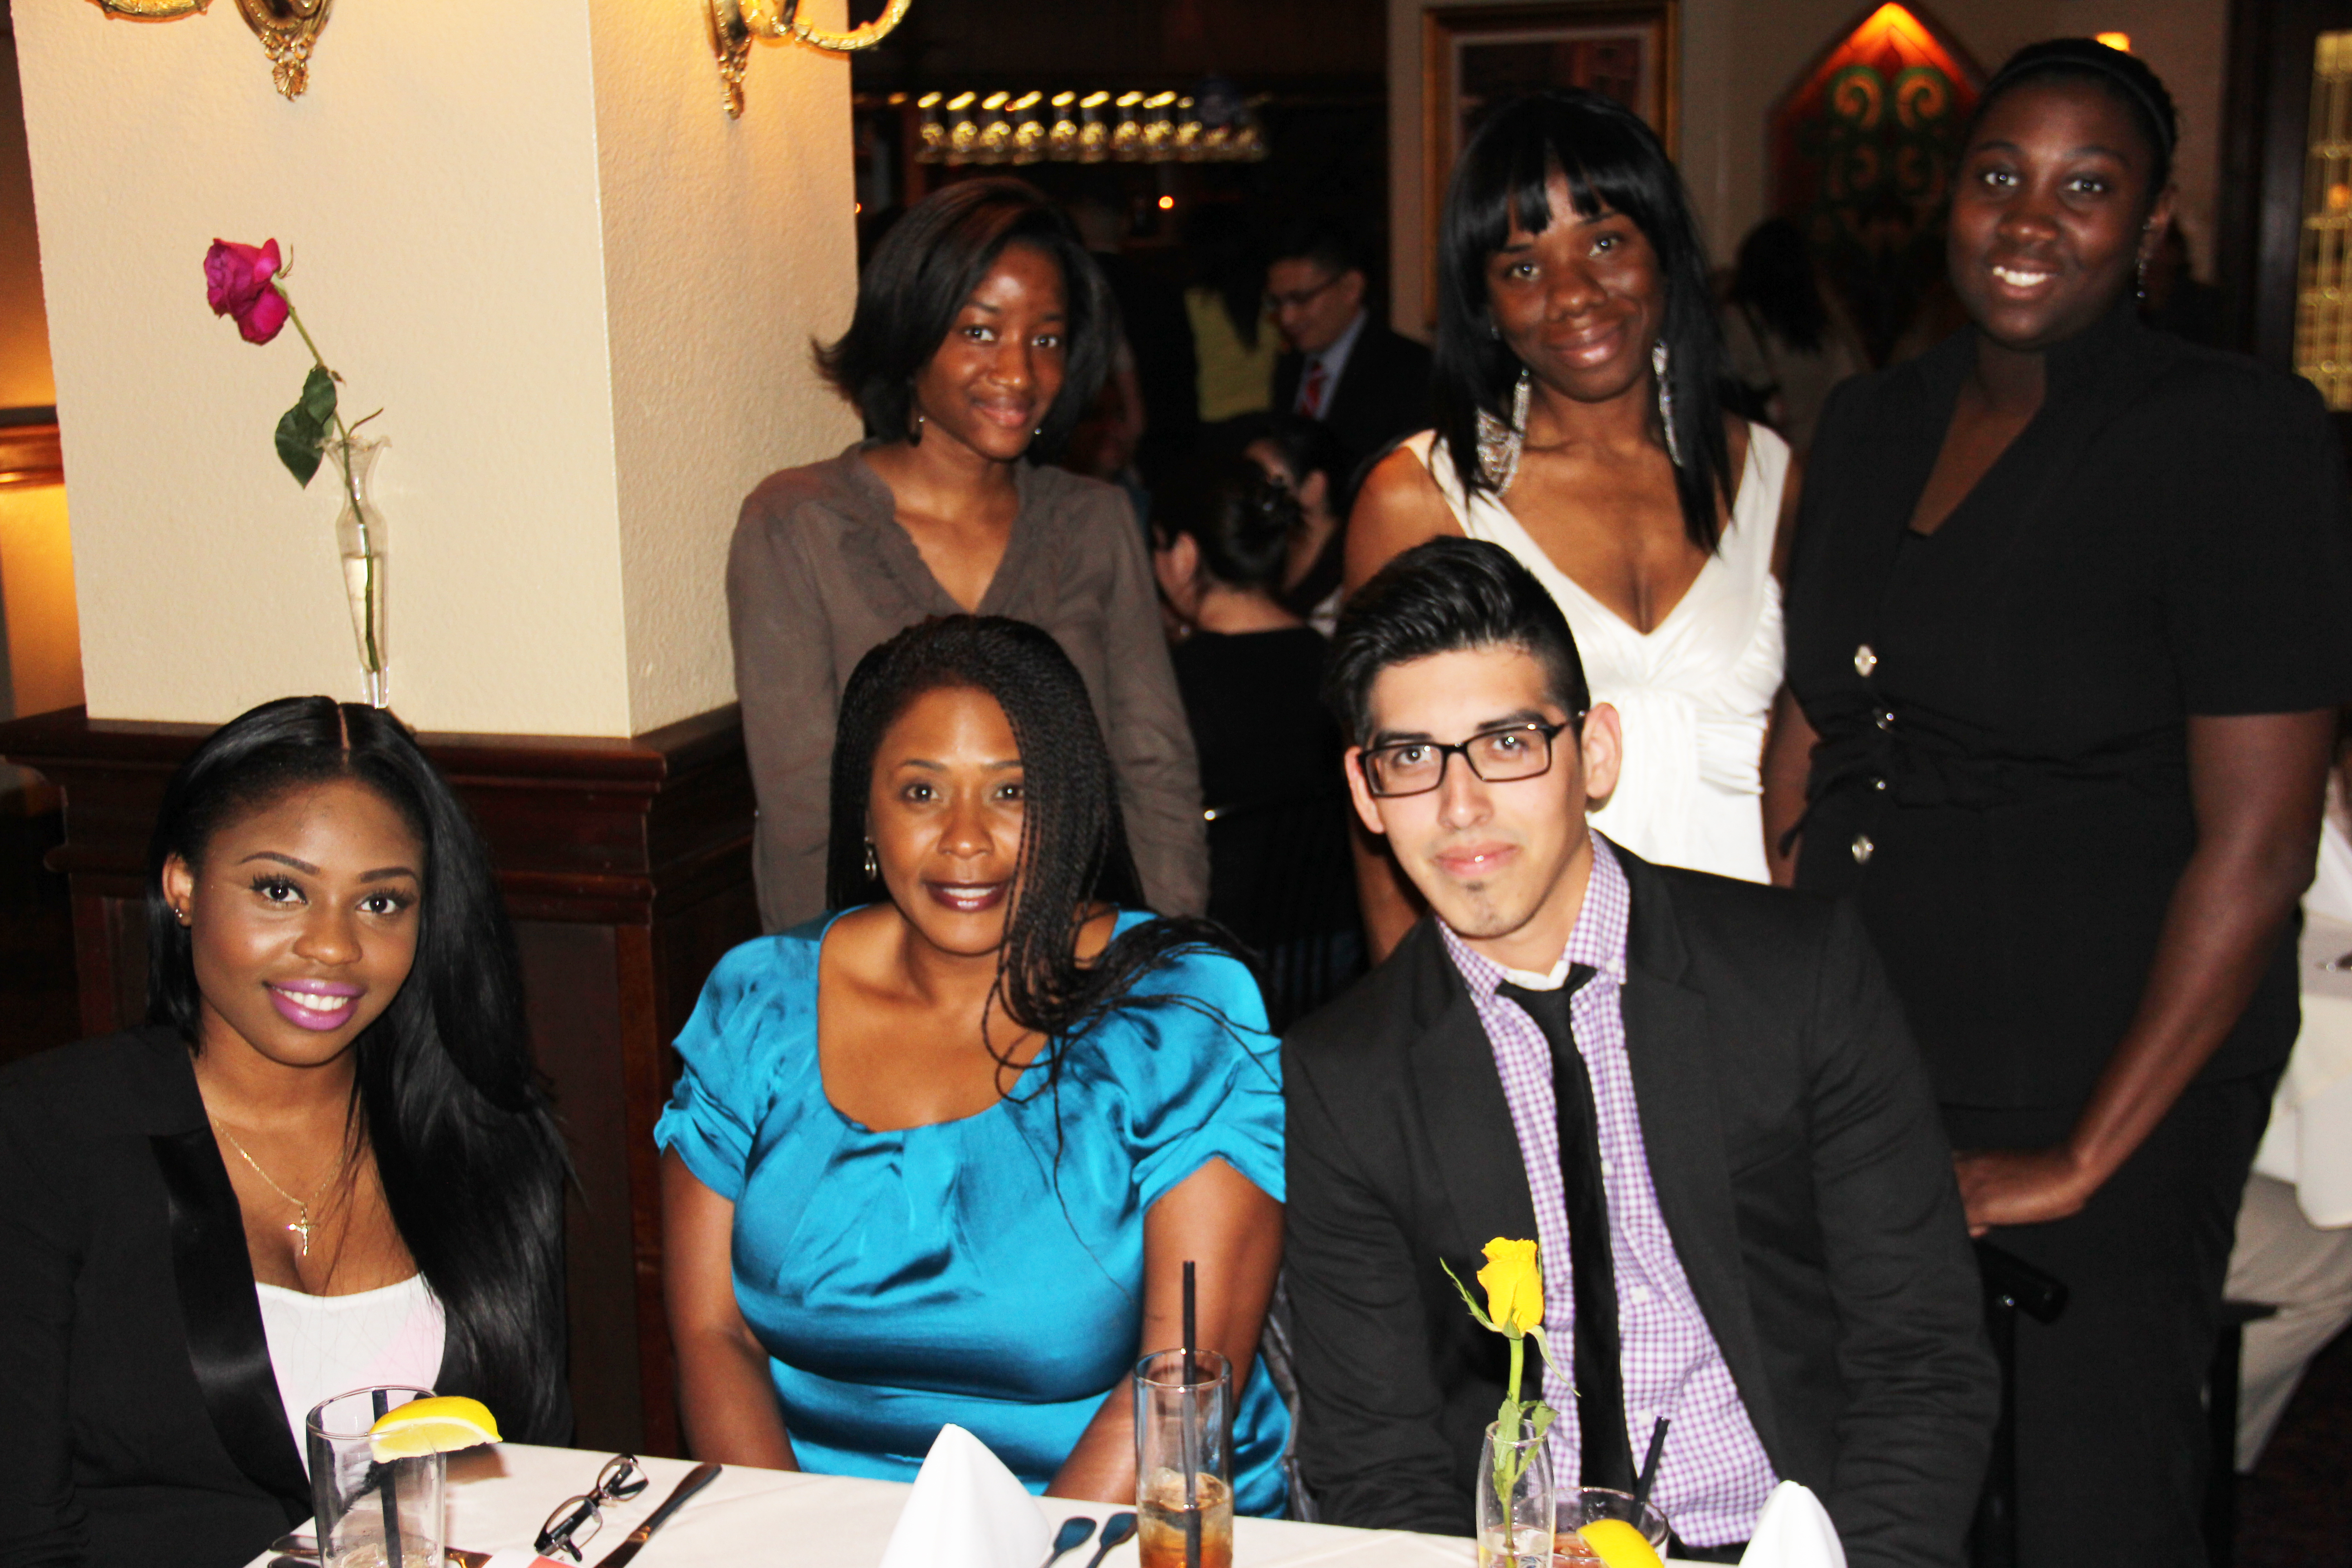 Business students receive tips on dining etiquette during the AMA dinner.